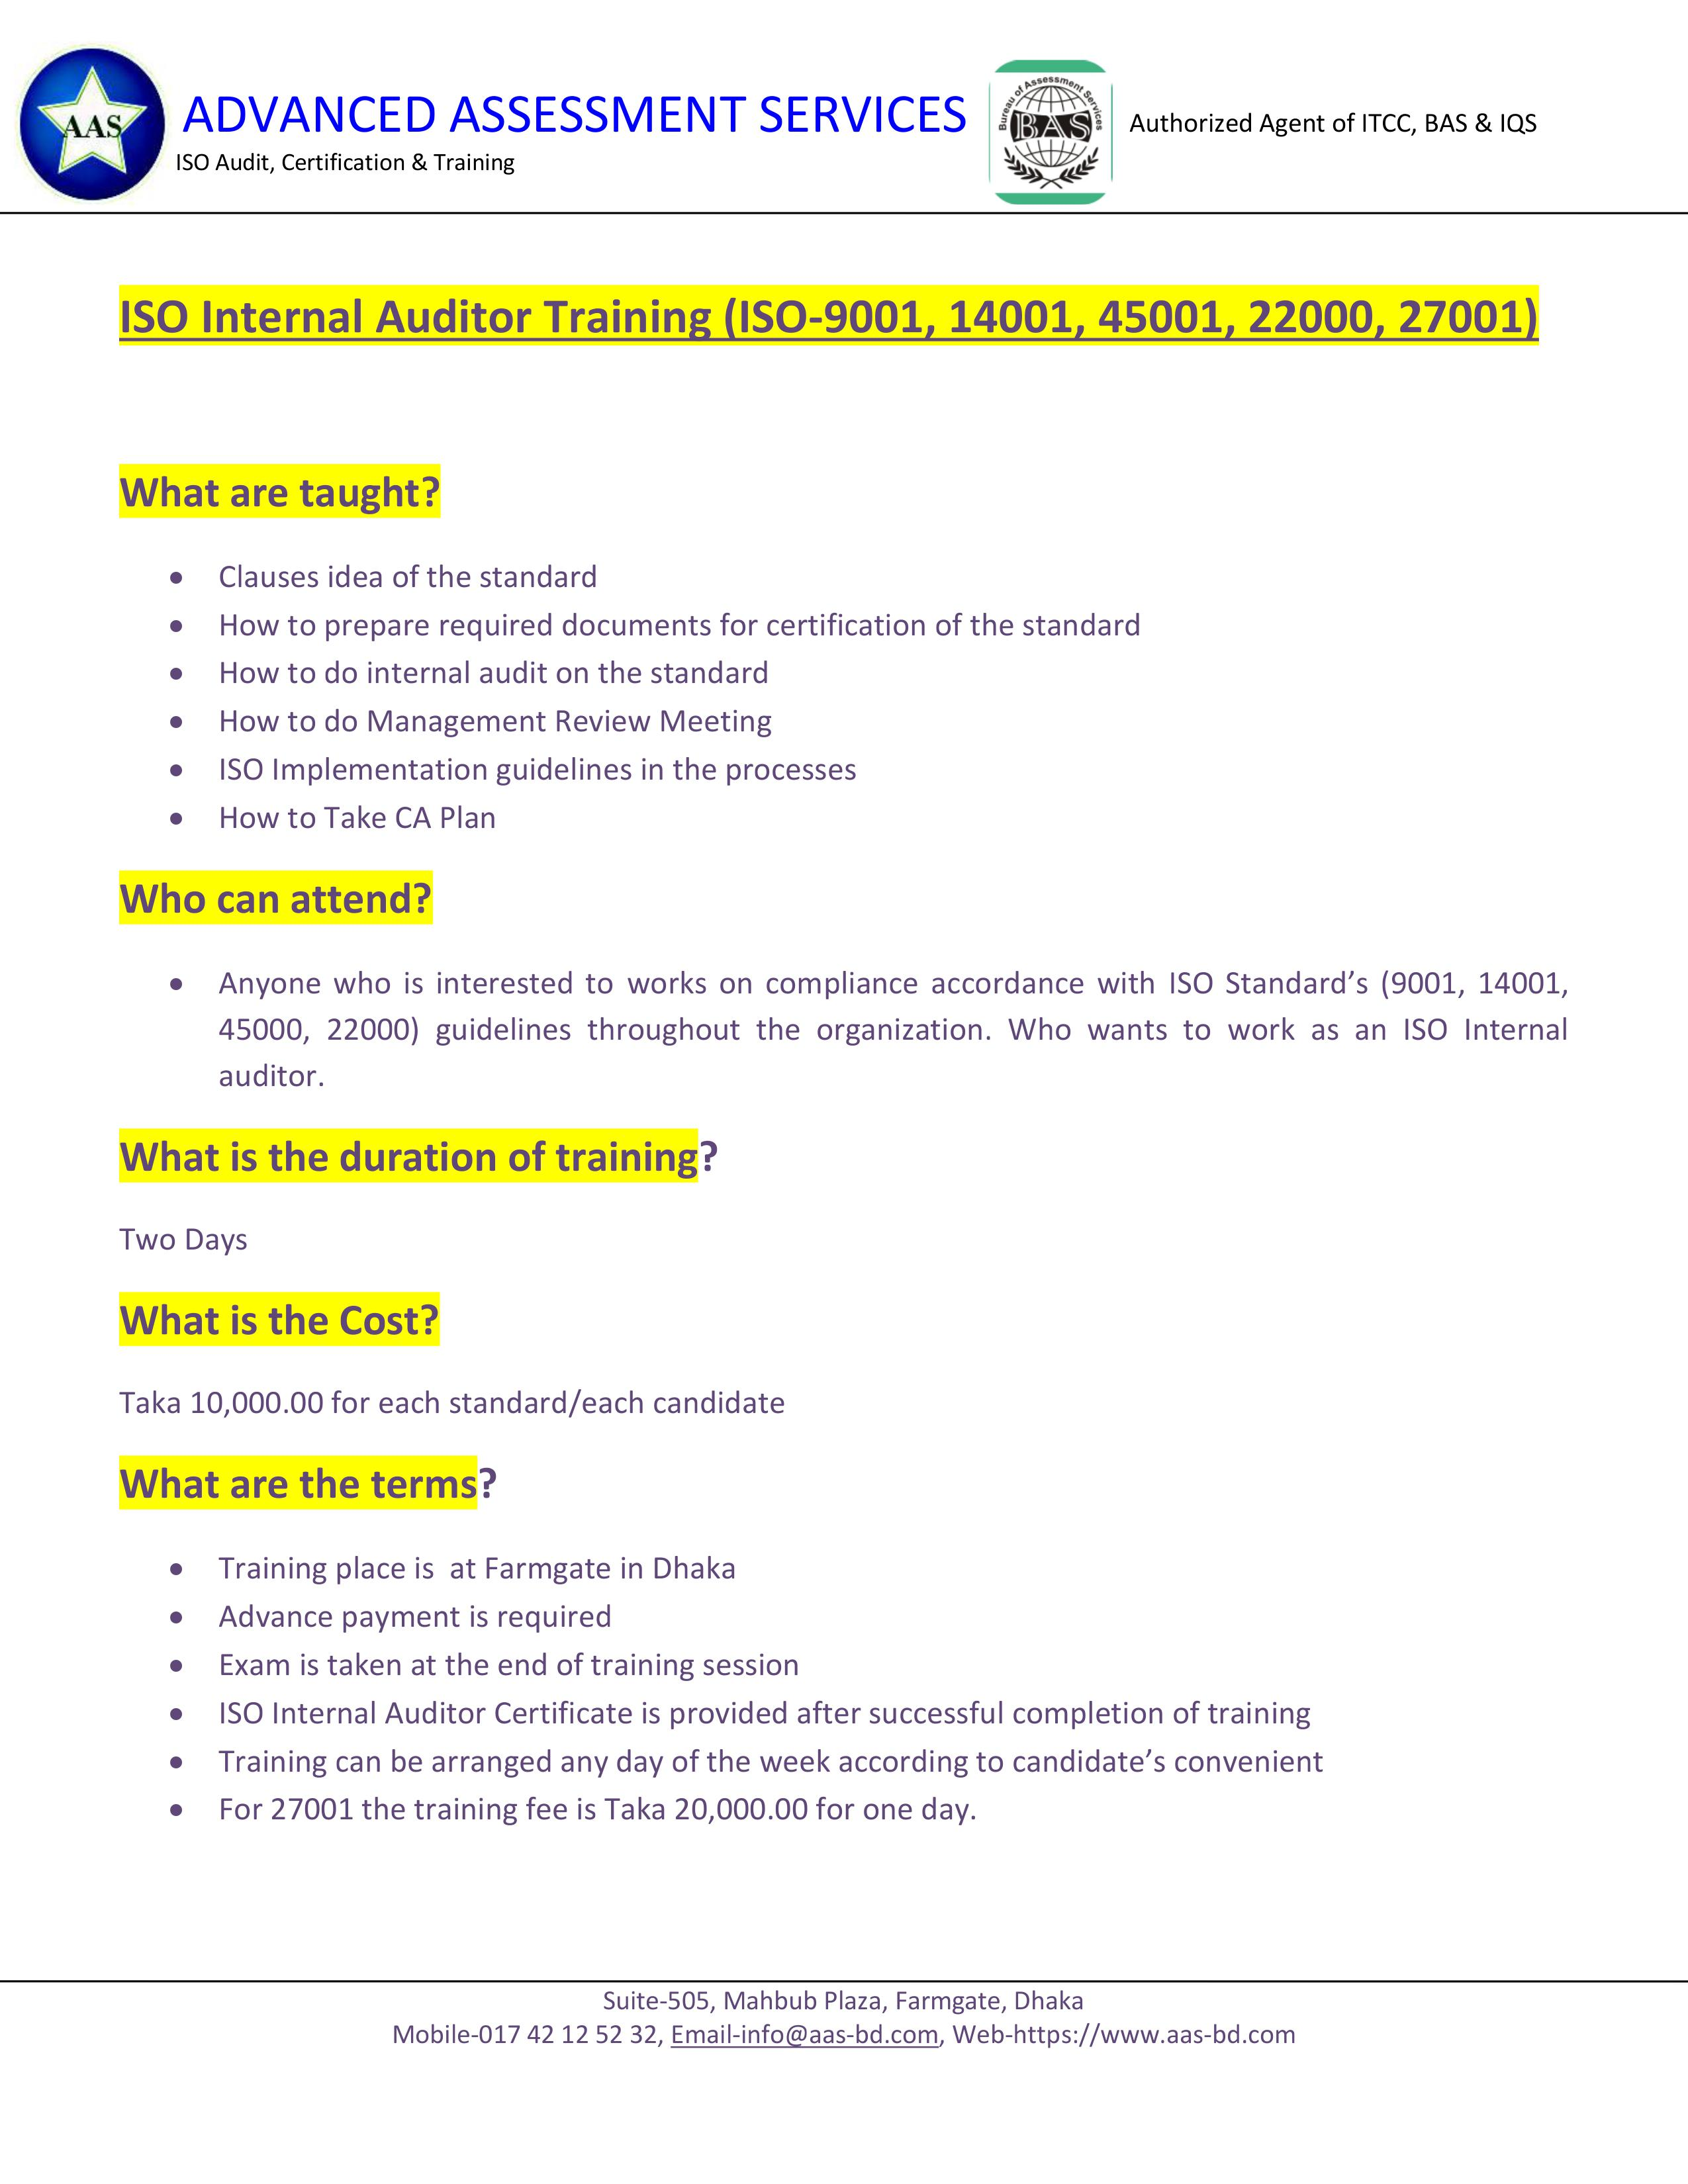 Iso Internal Auditors Training Advanced Assessment Services